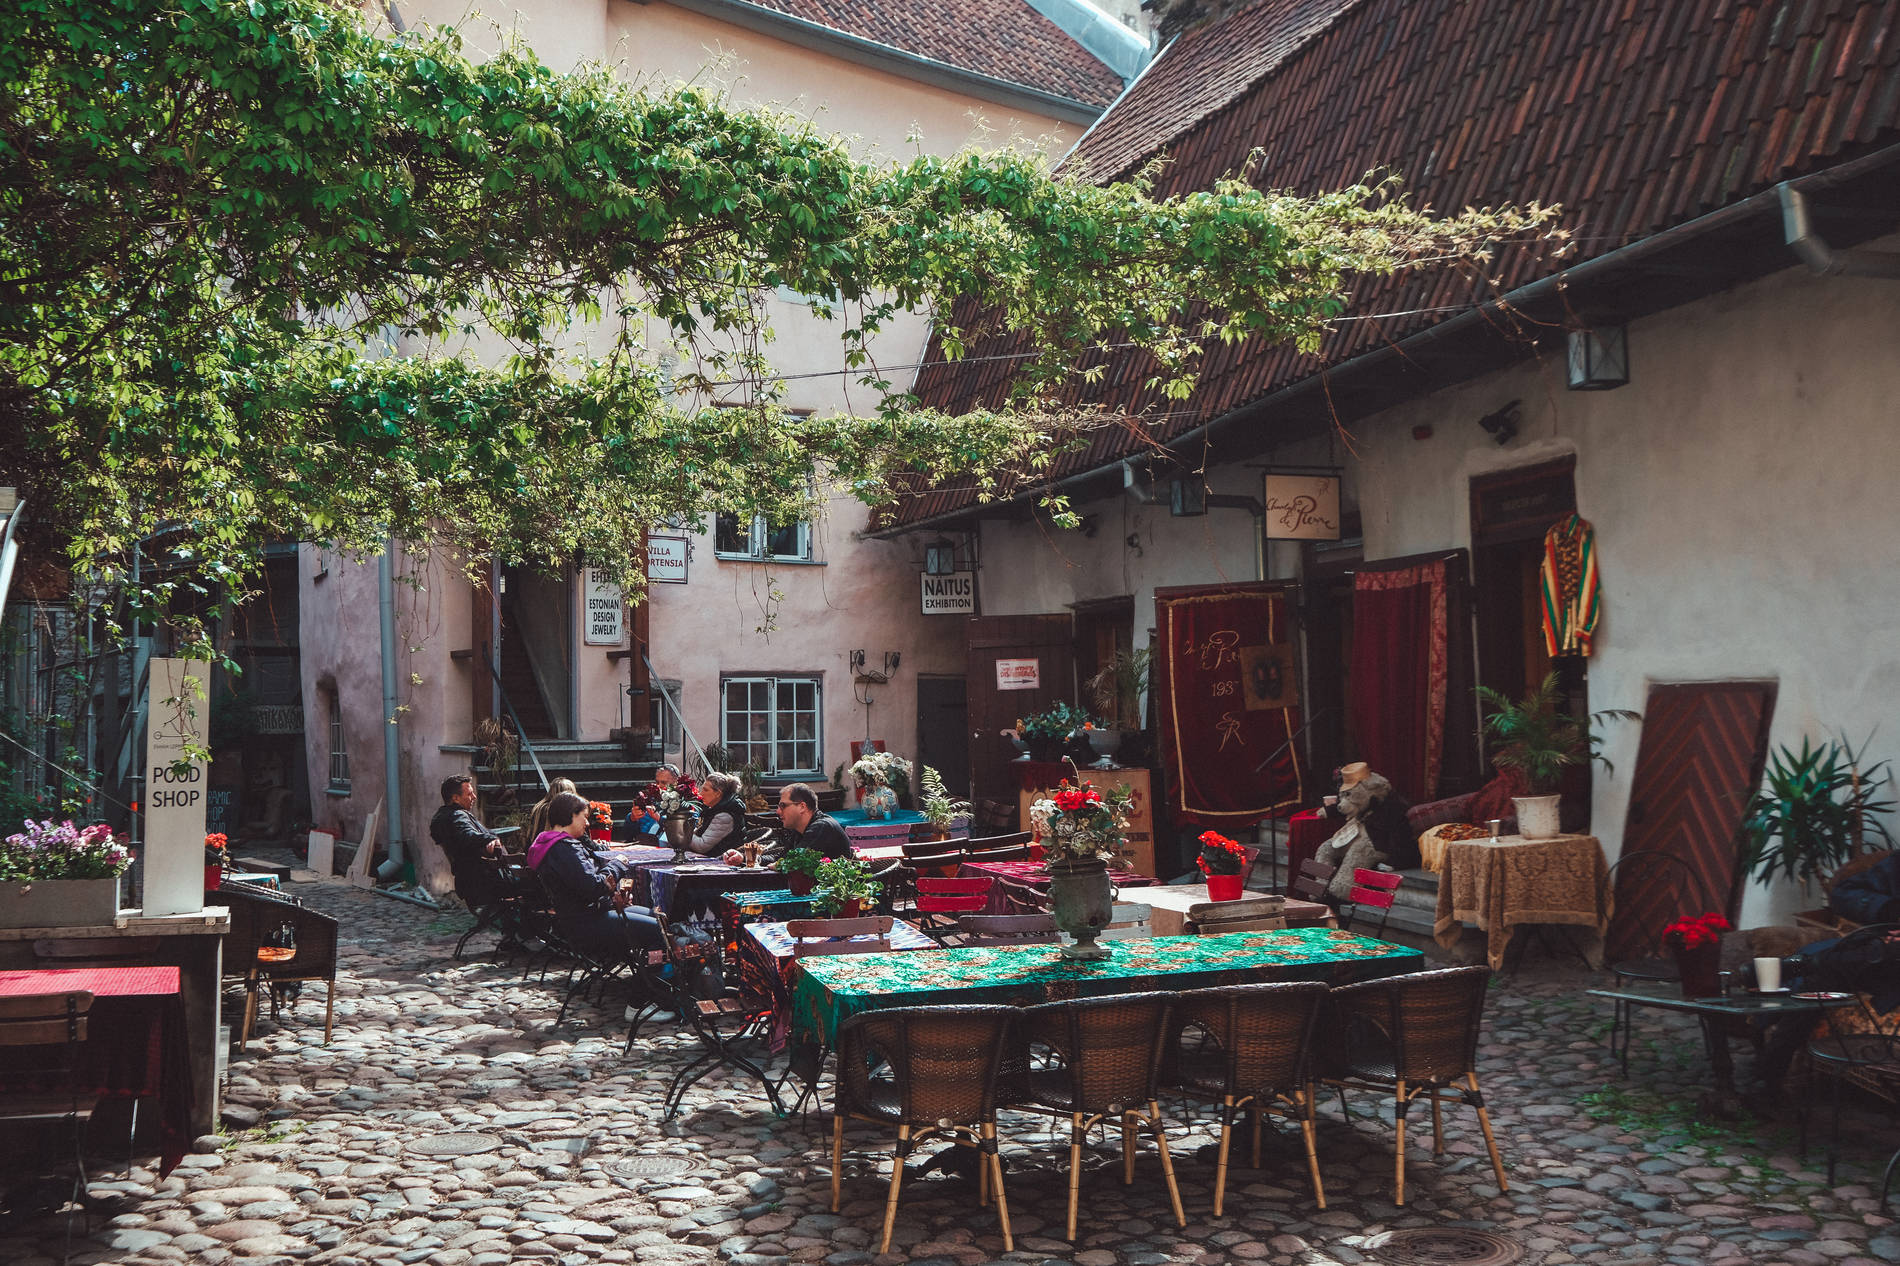 View of the Masters Courtyard in the Old Town of Tallinn, Estonia. Photo by: Kadi-Liis Koppel